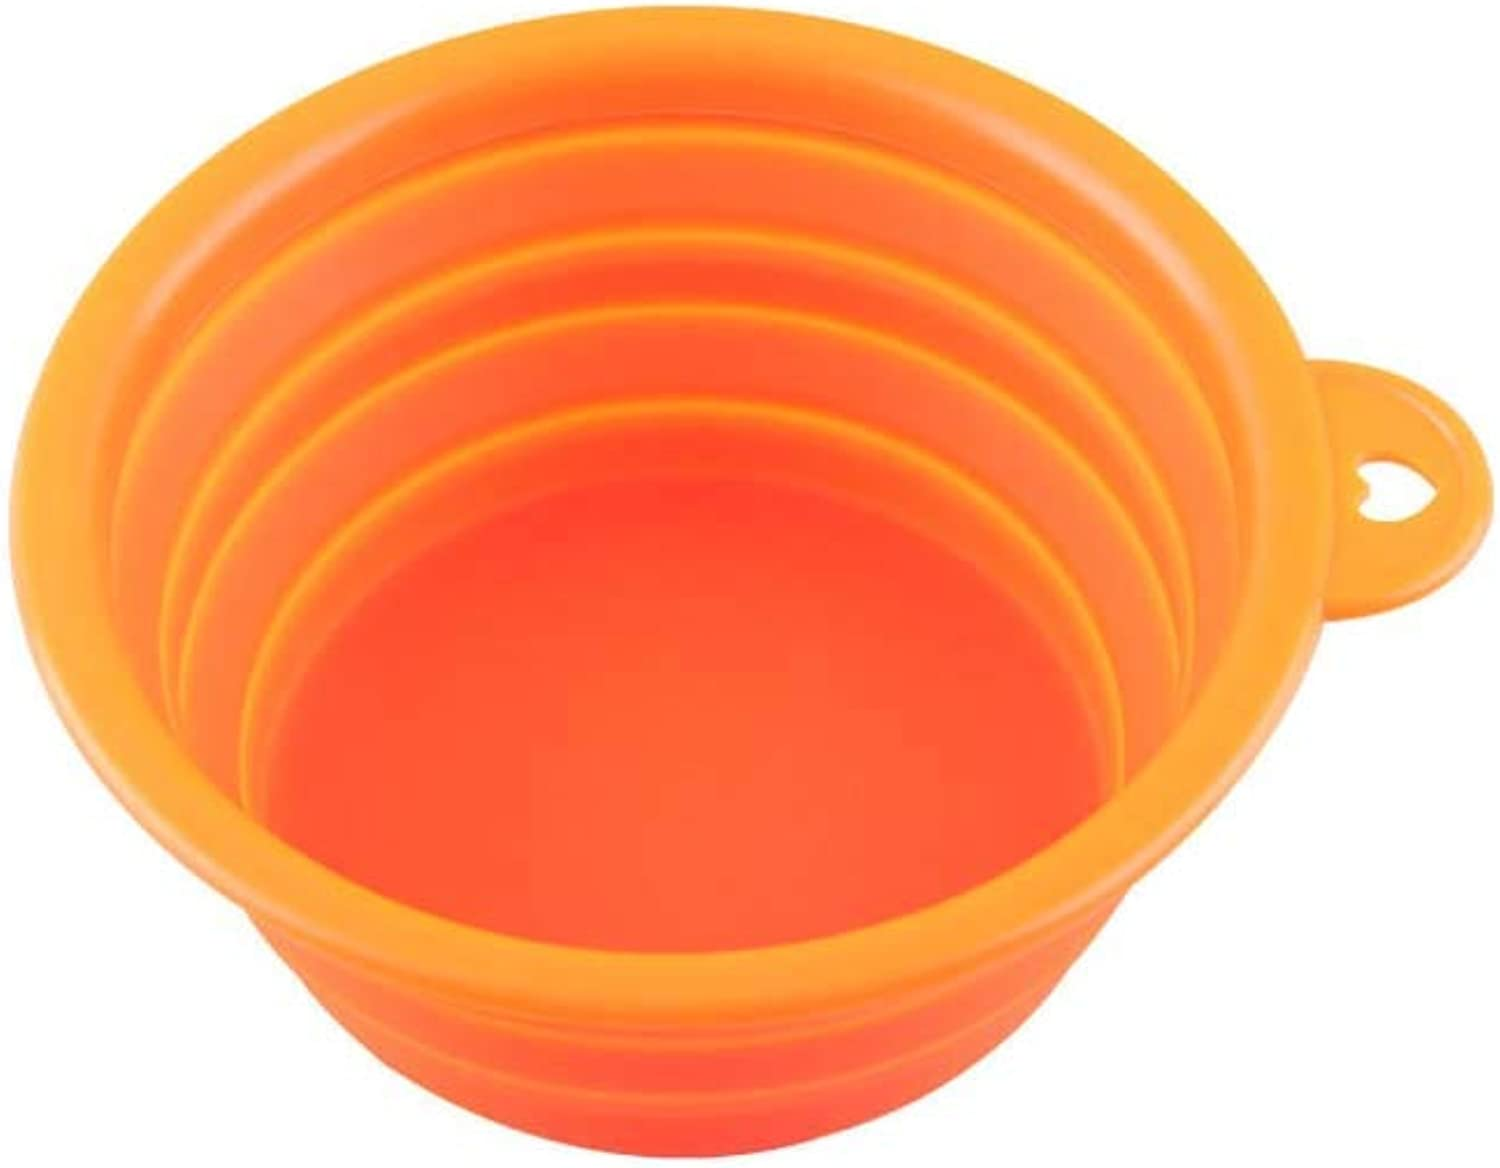 Cat Pet Silicone Food Bowl,Collapsible Dog Bowls Portable Water Bowl Pet Silicone Food Bowl,orange